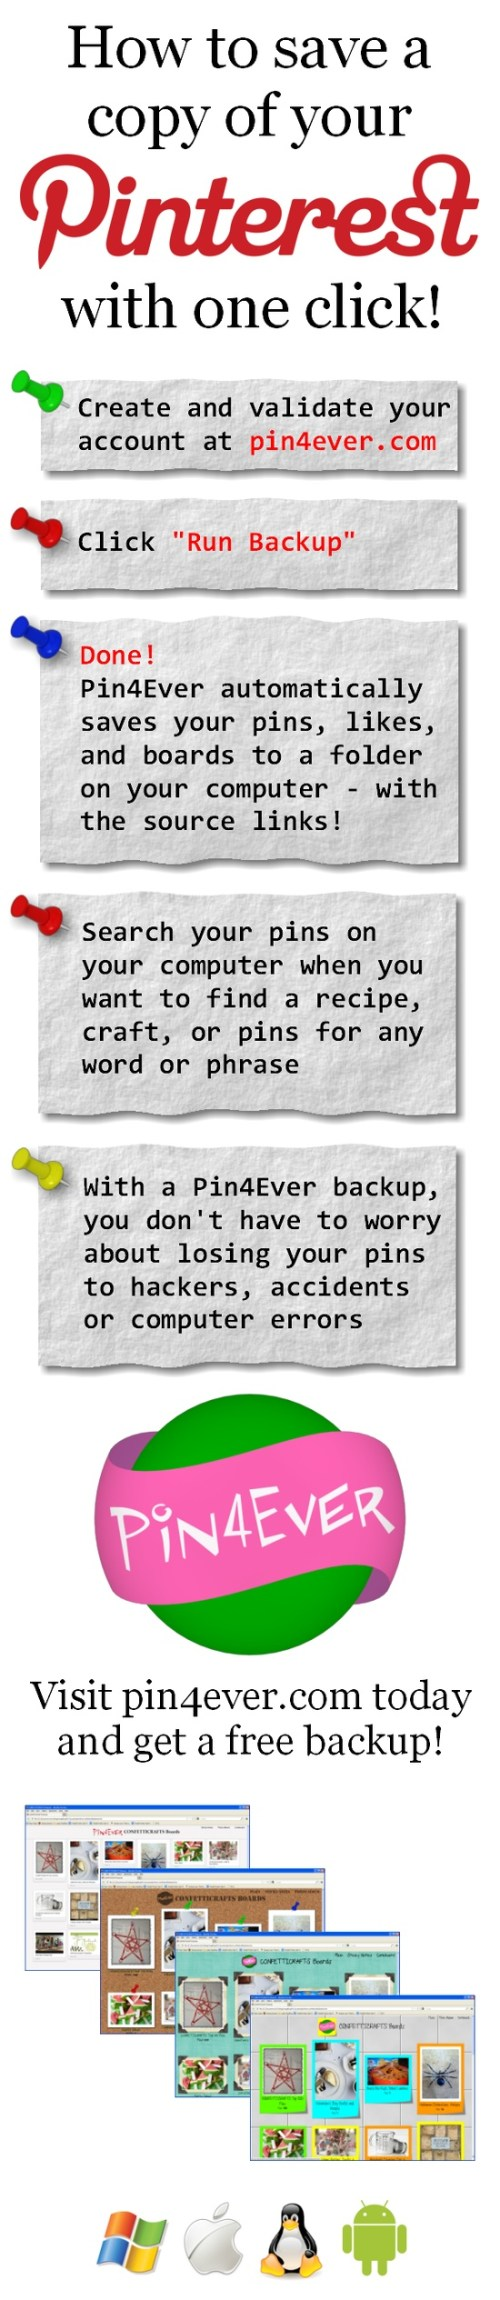 pin4ever-pinterest-account-backup-service_516ed9a3d24be